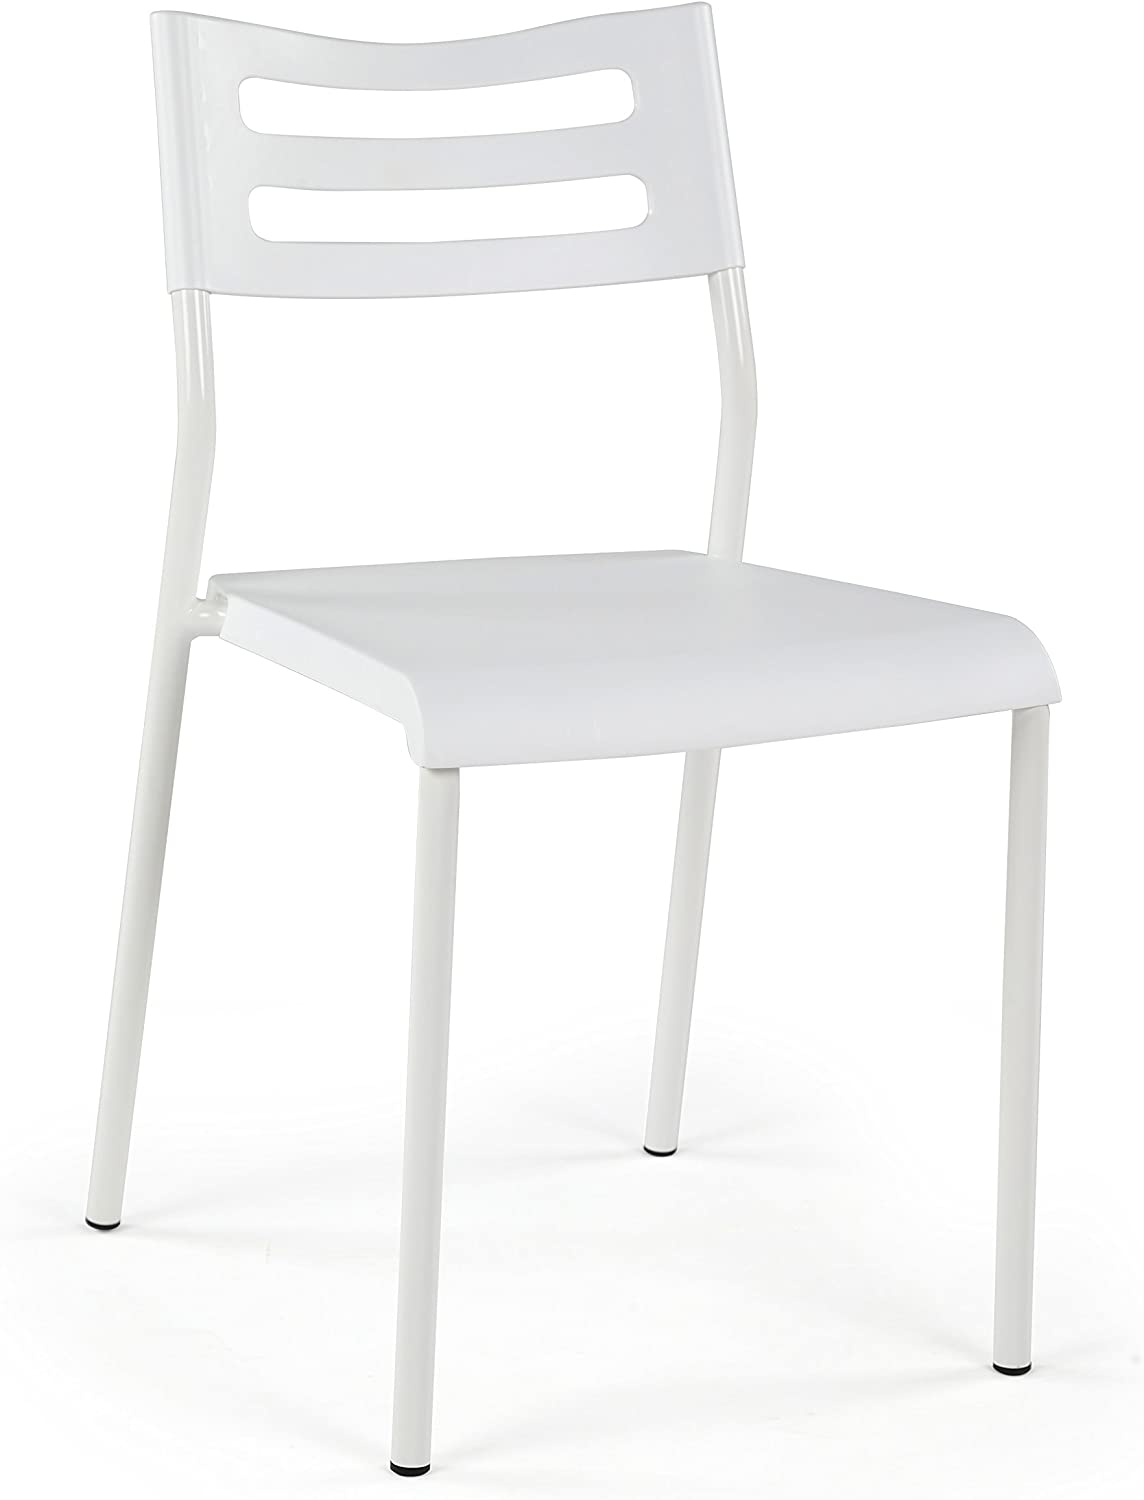 Tot Tutors Humble Crew LT404 Chair for Desks and Kitchen Dining Tables, White, White